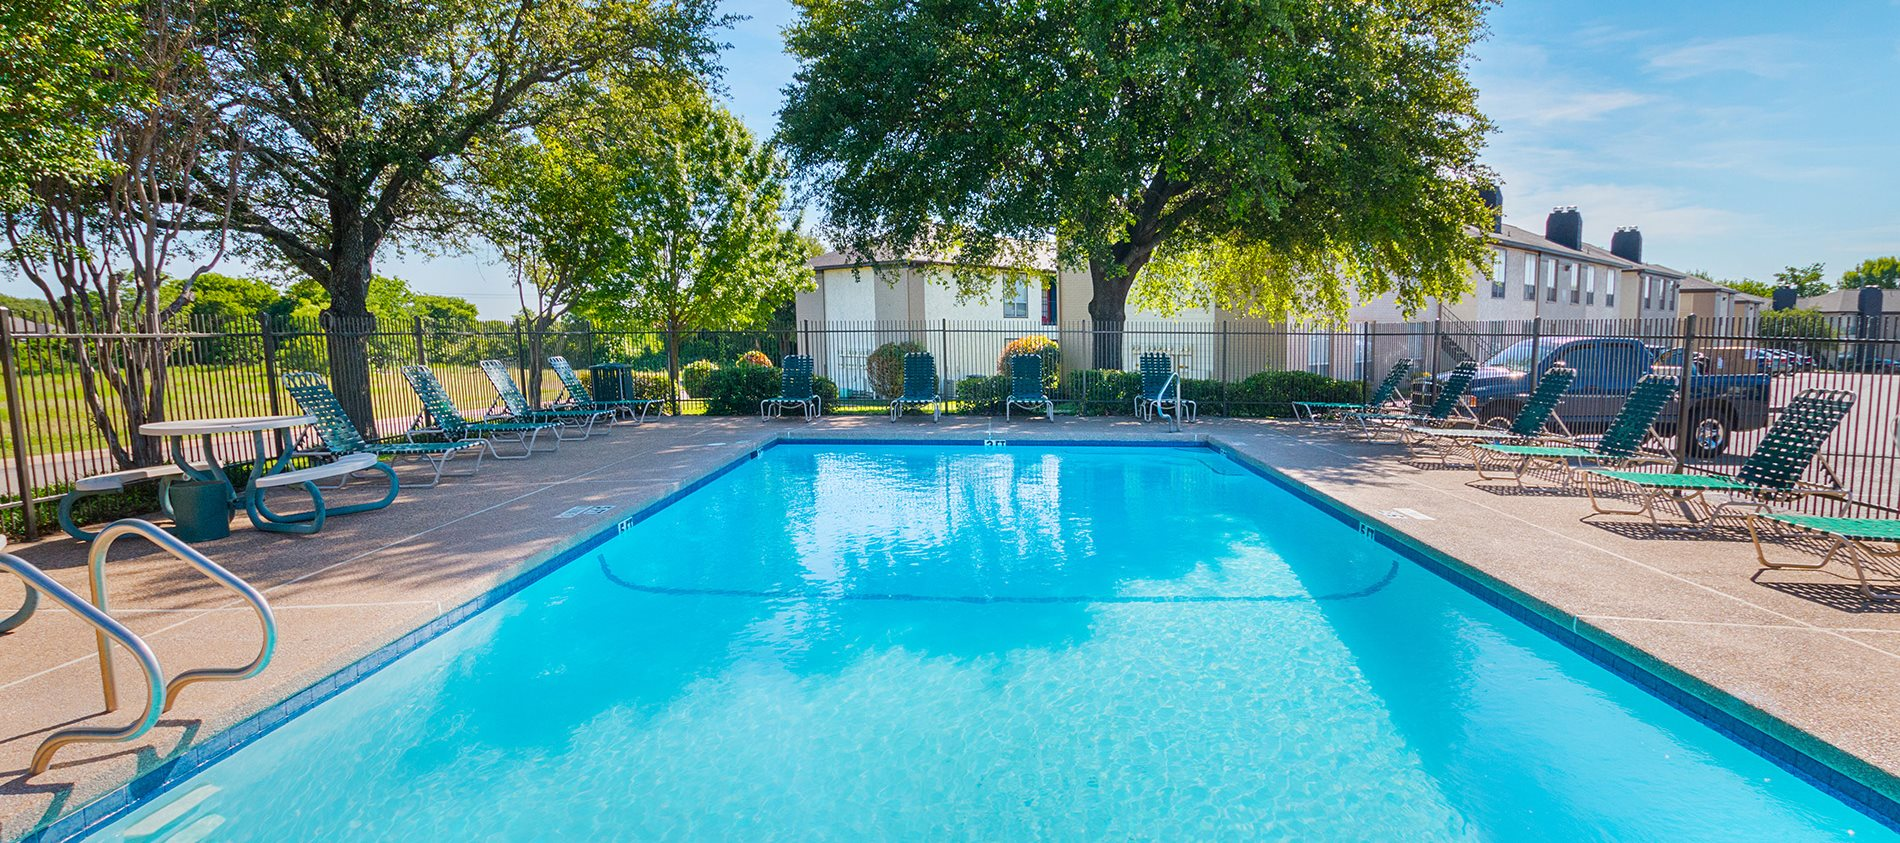 Pool at Heritage Square Apartment Homes, Waco, Texas, TX